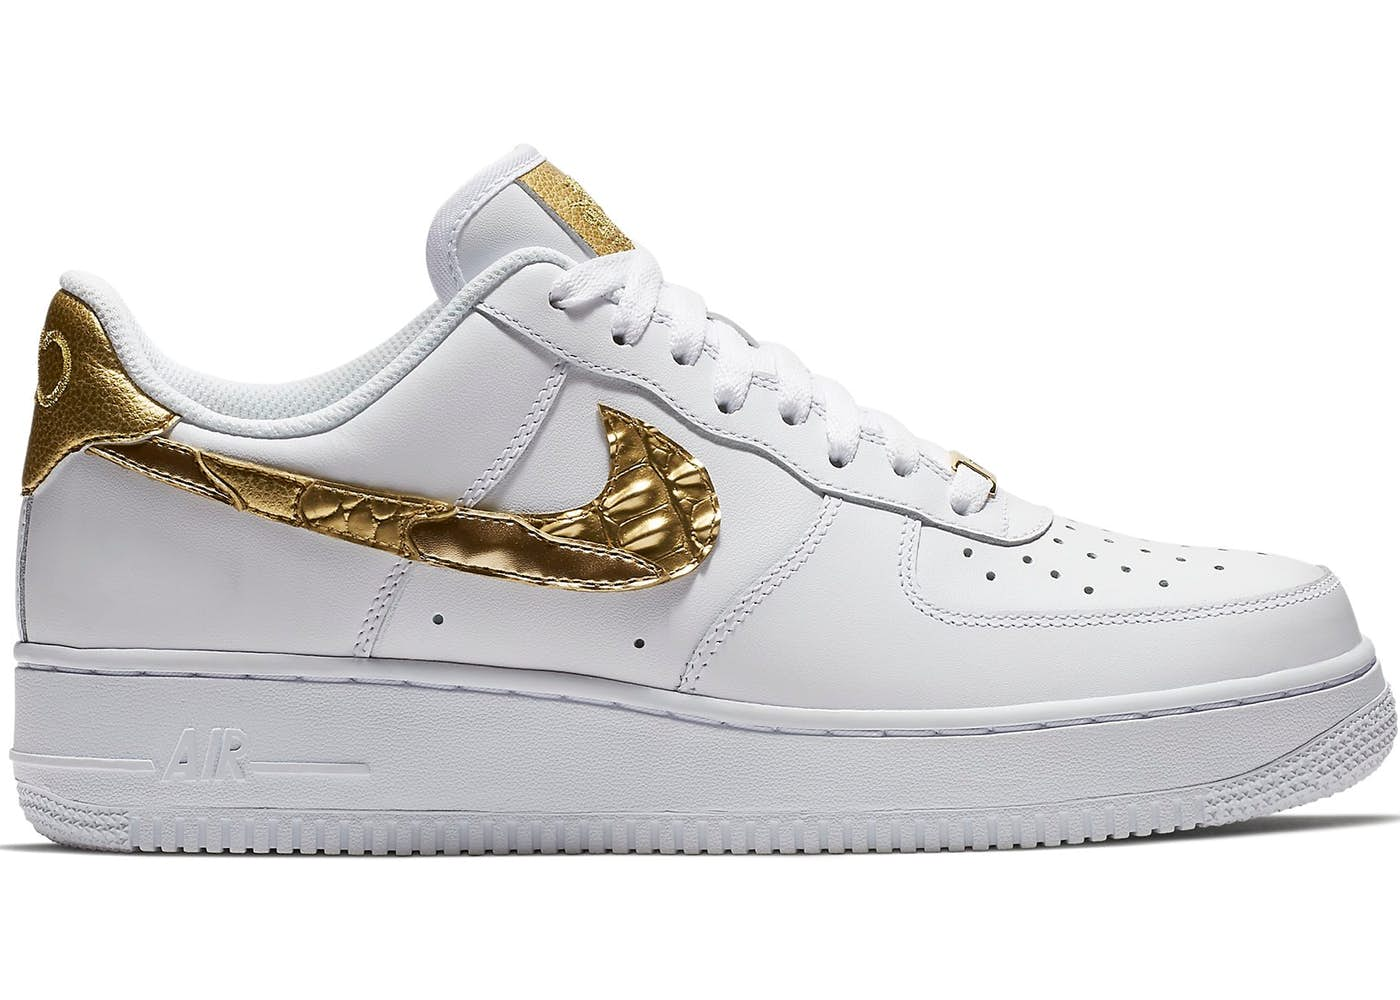 Foto ufficiali: Nike Air Force 1 Low CR7